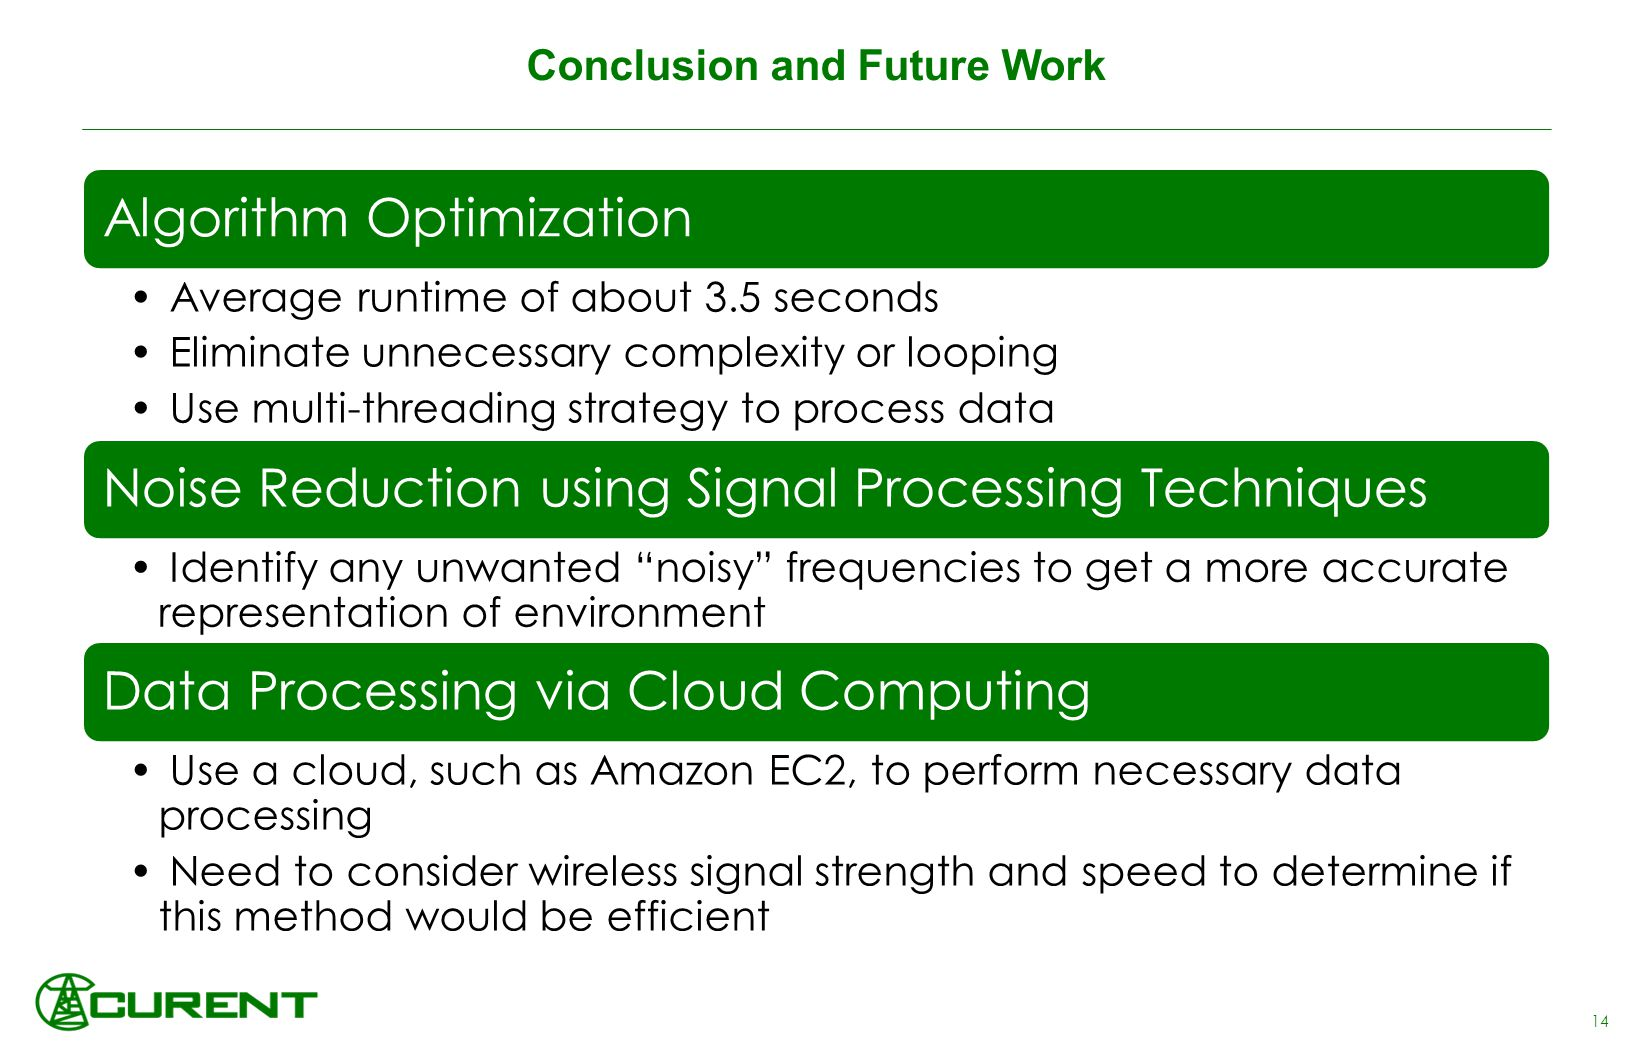 Conclusion and Future Work Algorithm Optimization Average runtime of about 3.5 seconds Eliminate unnecessary complexity or looping Use multi-threading strategy to process data Noise Reduction using Signal Processing Techniques Identify any unwanted noisy frequencies to get a more accurate representation of environment Data Processing via Cloud Computing Use a cloud, such as Amazon EC2, to perform necessary data processing Need to consider wireless signal strength and speed to determine if this method would be efficient 14